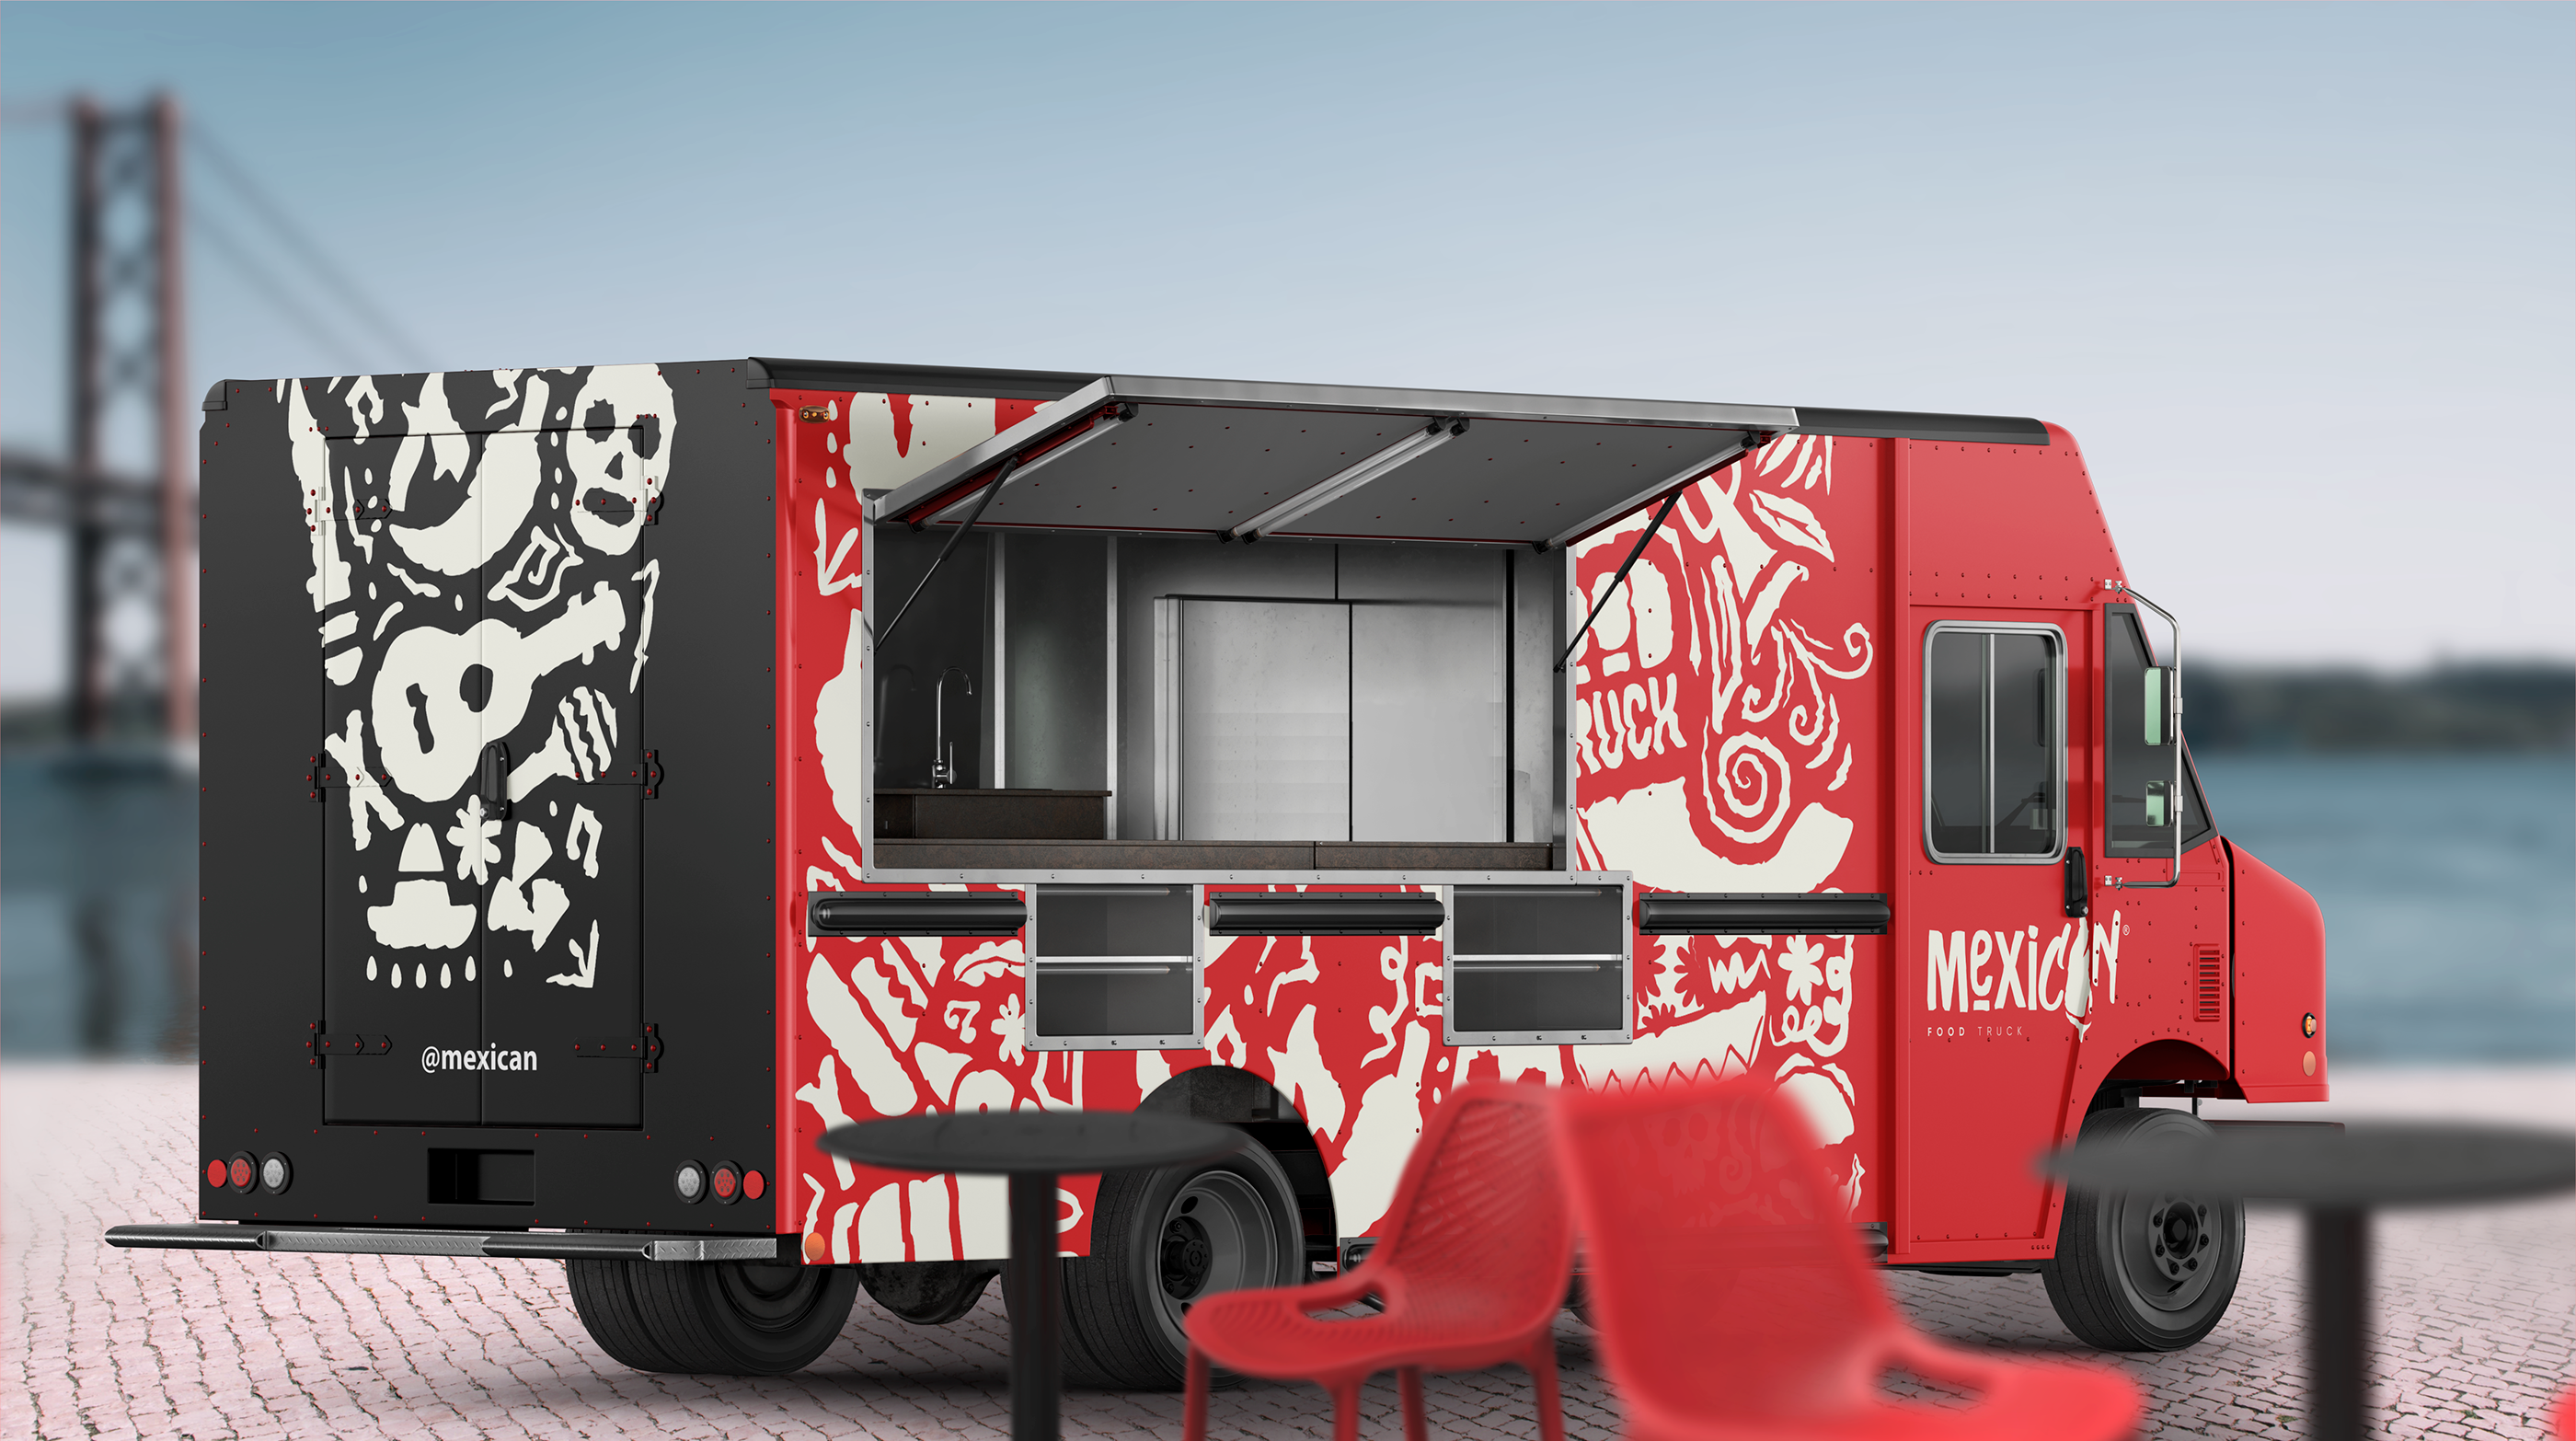 Mexican Food Truck On Behance Mexican Food Recipes Food Truck Food Truck Design